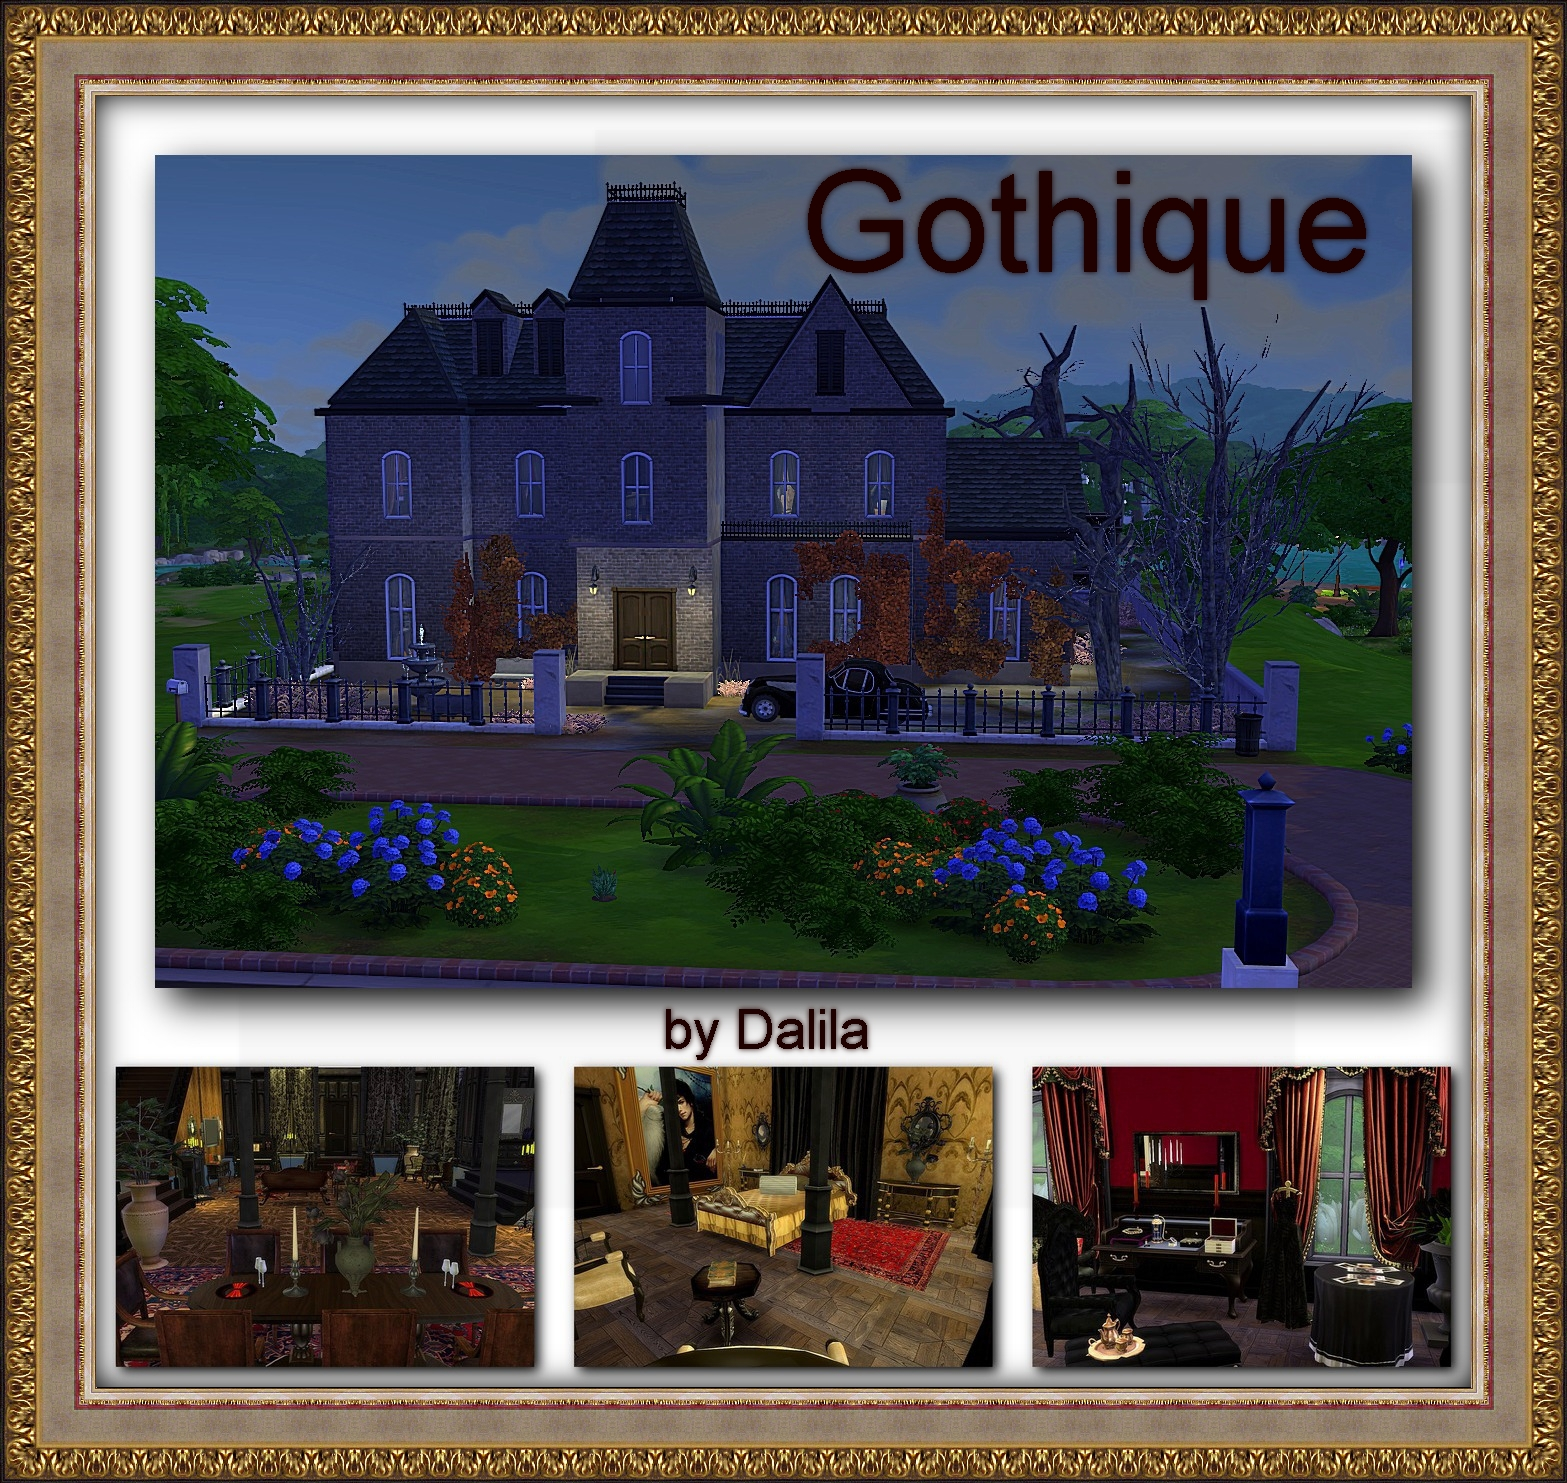 Gothique by Dalila